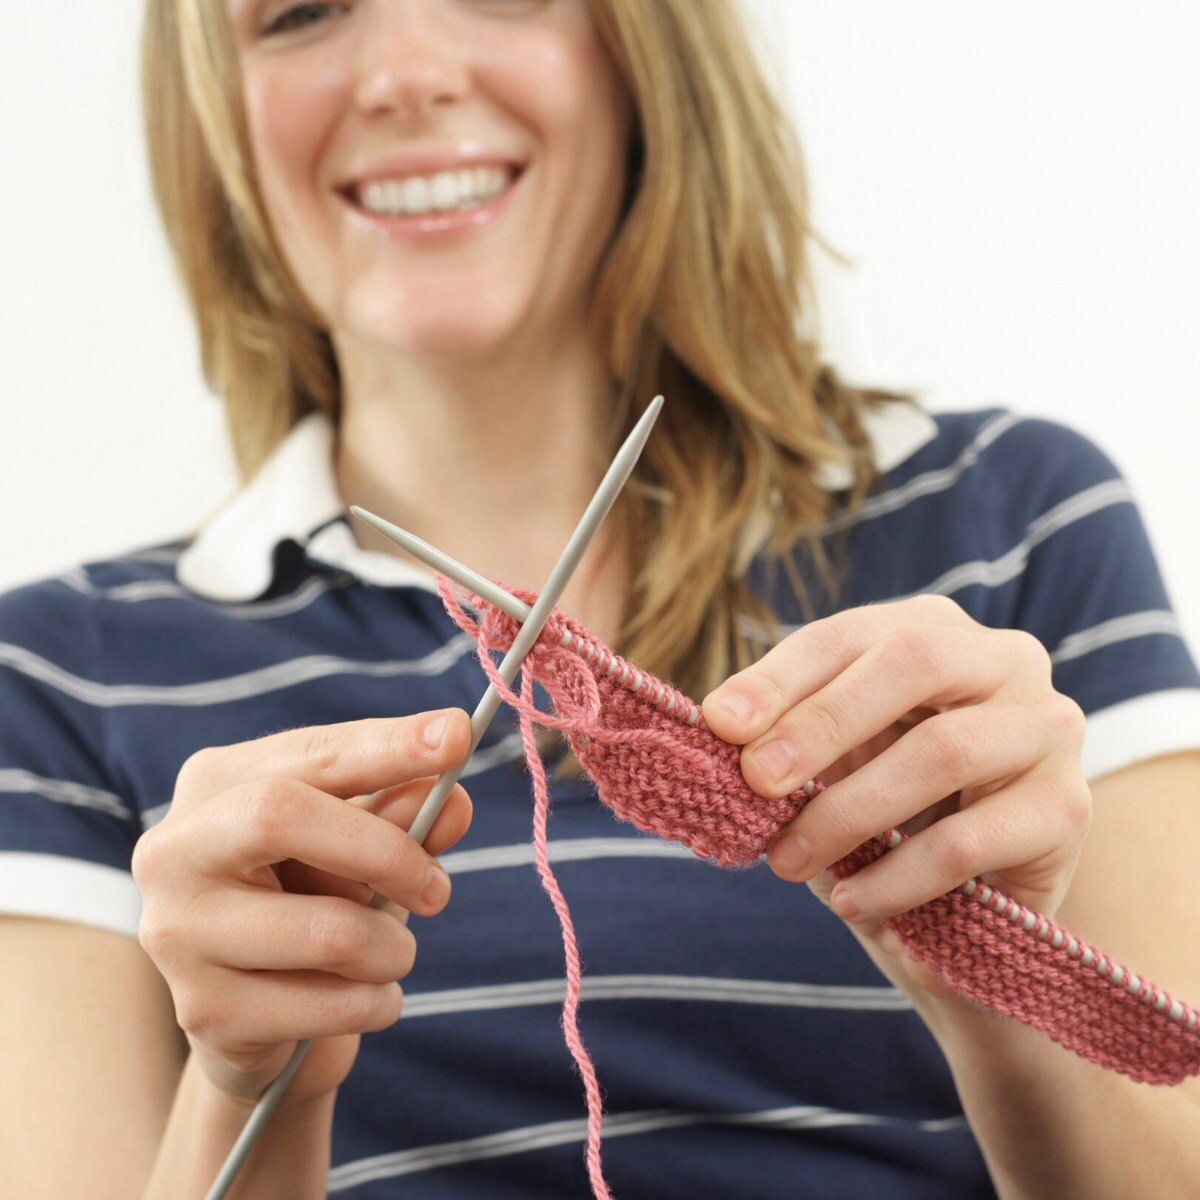 woman is knitting